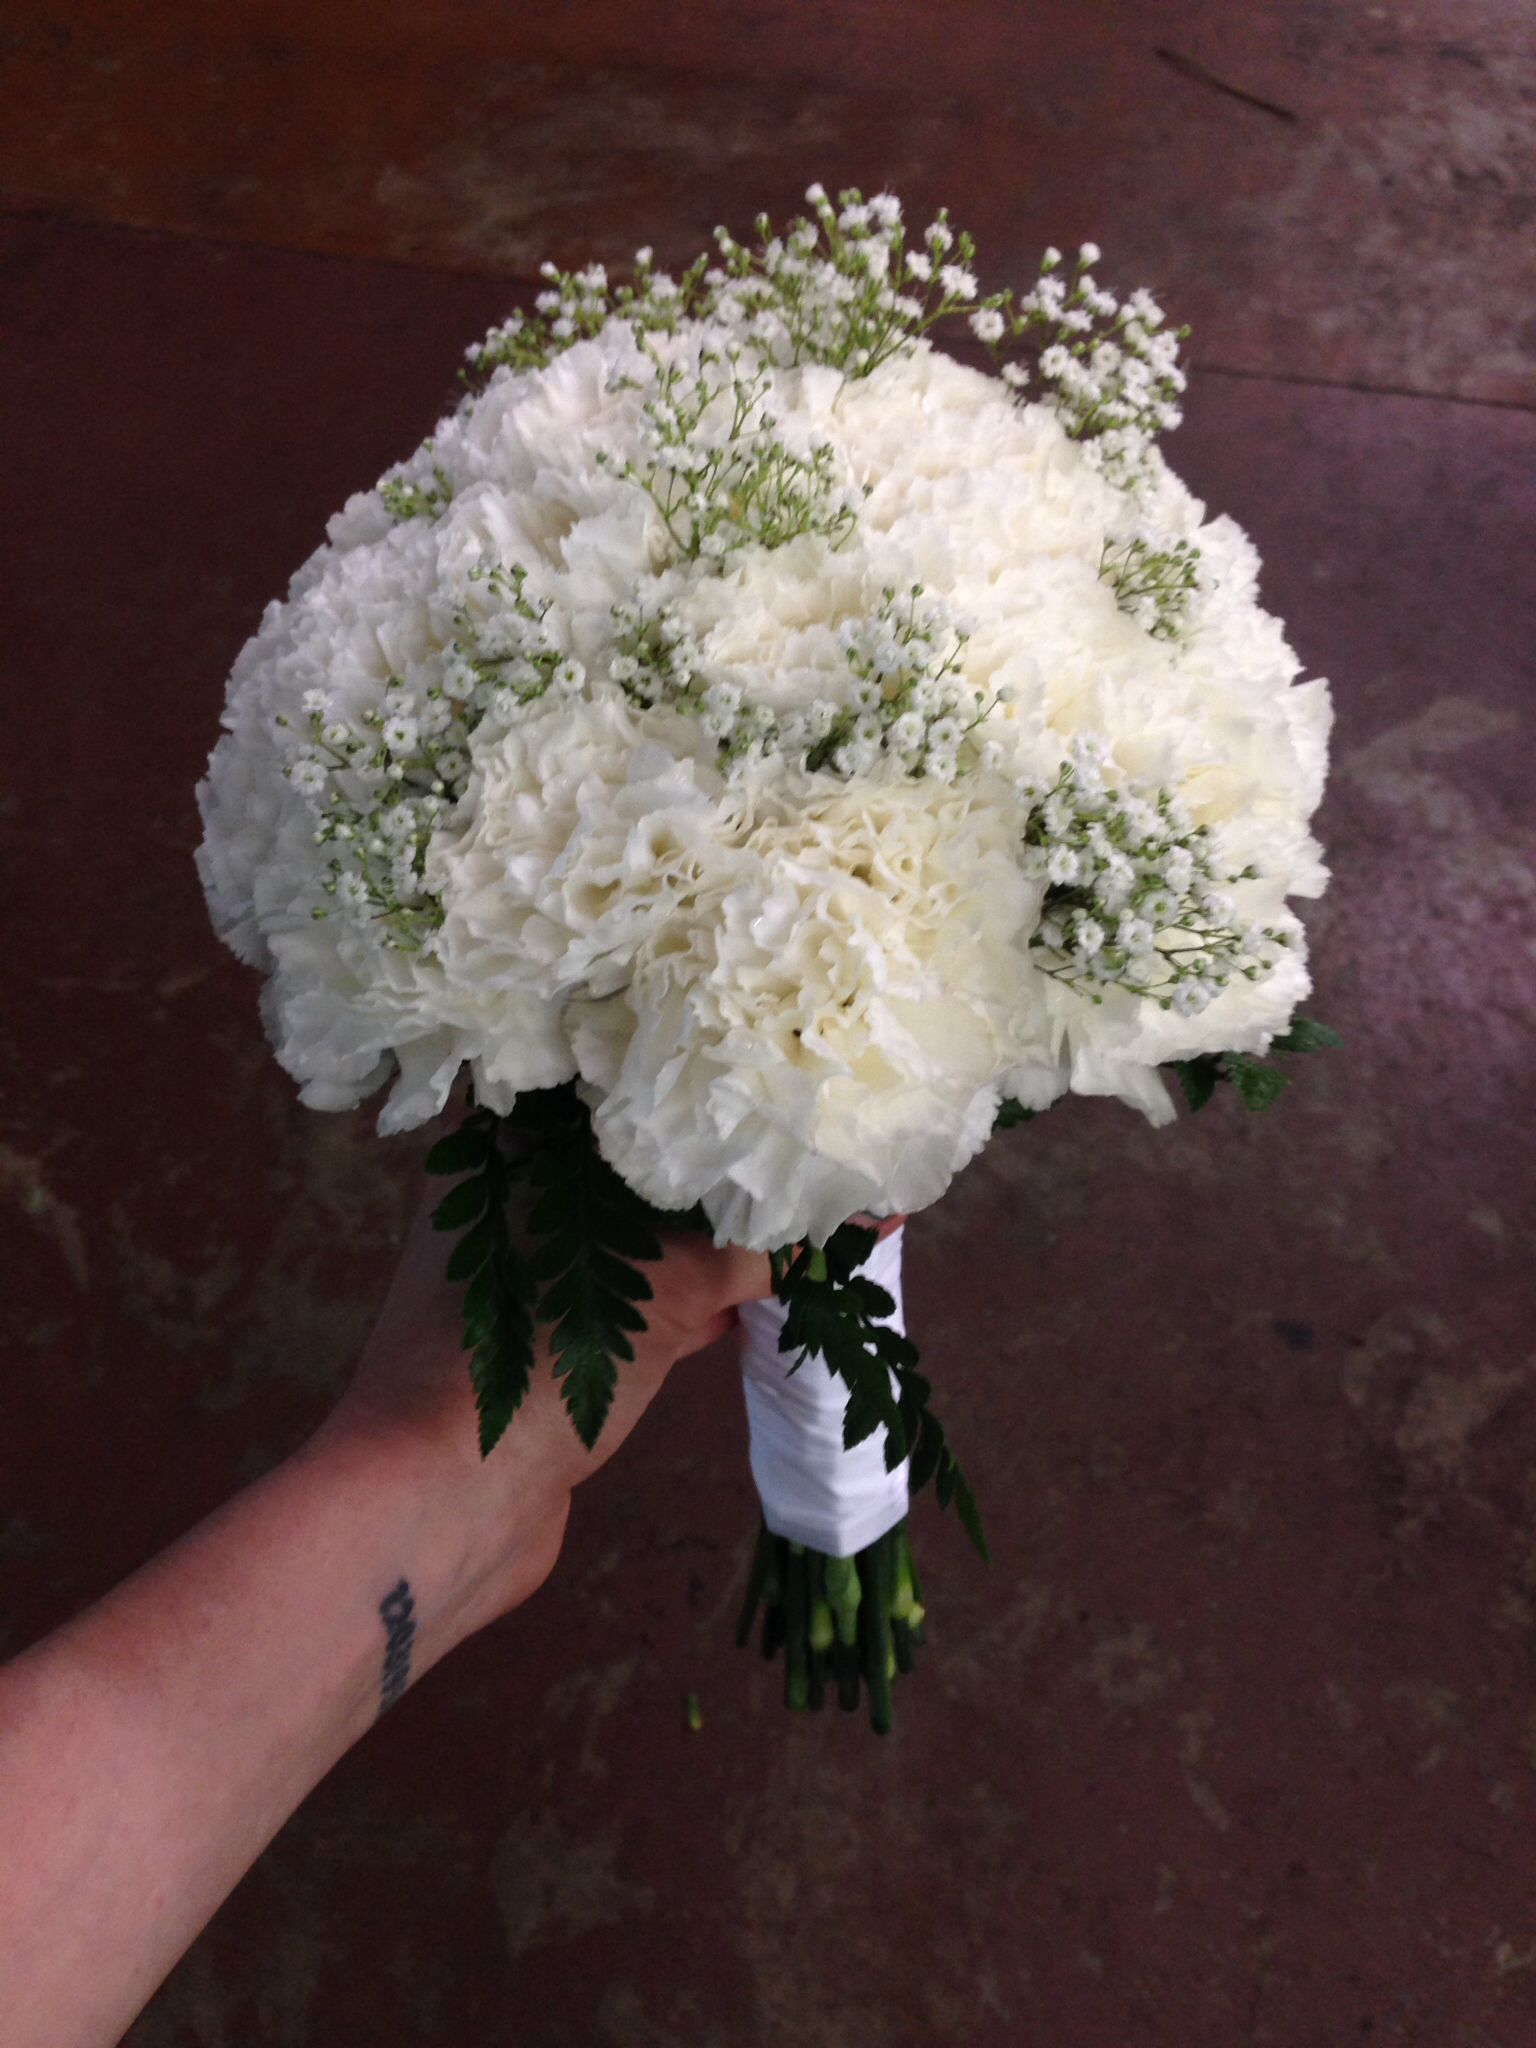 carnations wedding bouquet bridal bouquet white carnations babies breath all white 2462